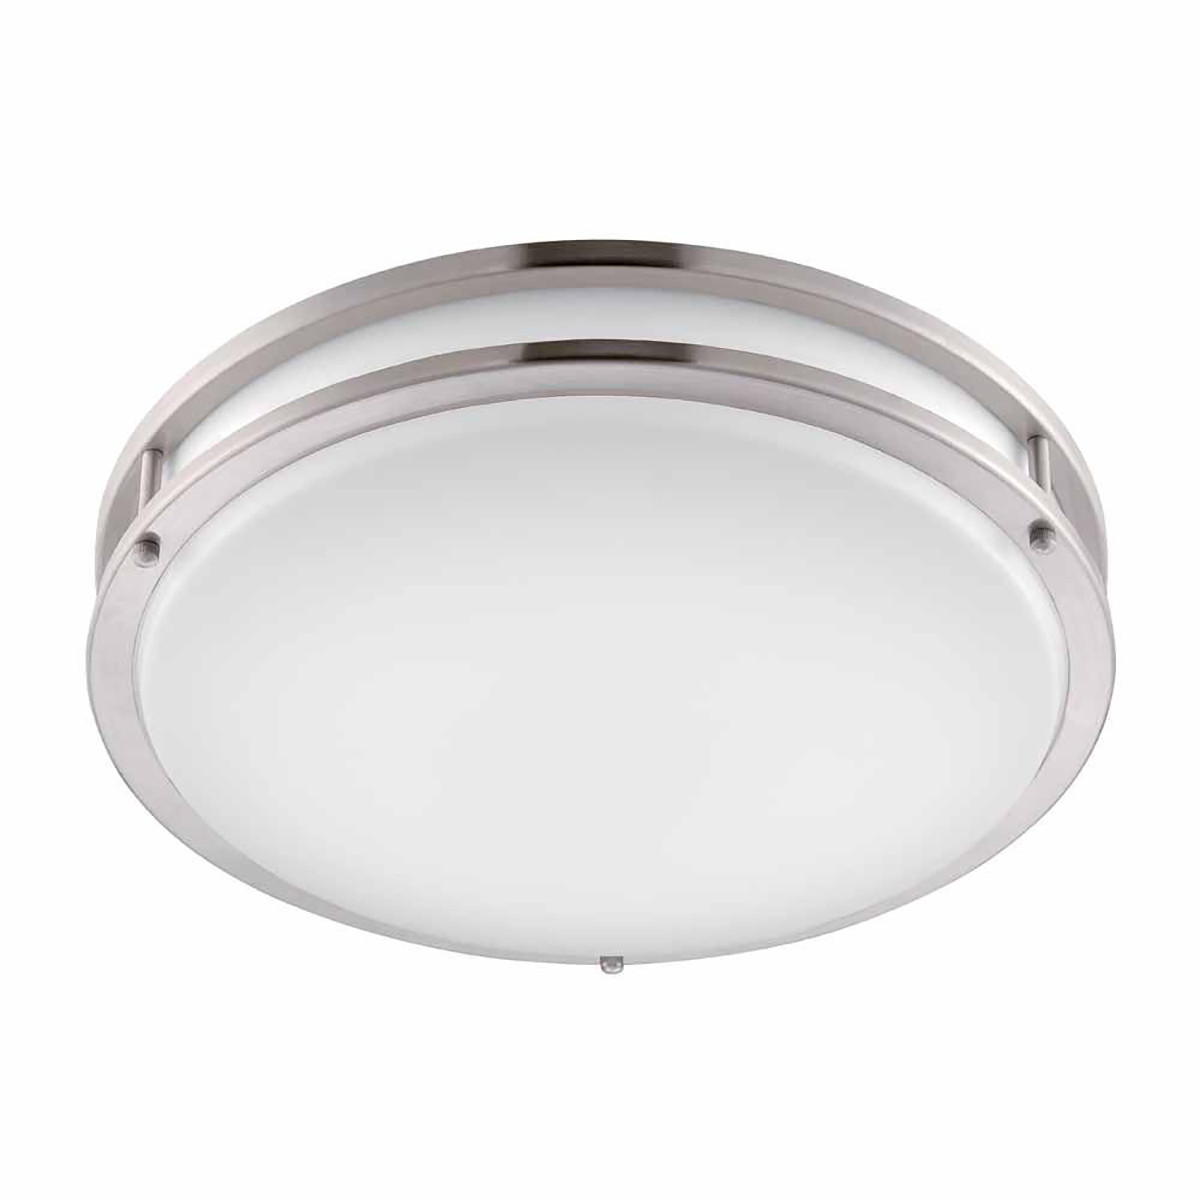 18W 12inch ,80Lm/W ,Flush Mount, Round Nickel Finish with Acrylic shade ,Dimmable Triple CCTS Changeable regularly By RF control Ceiling Light Fixture for Home Lighting